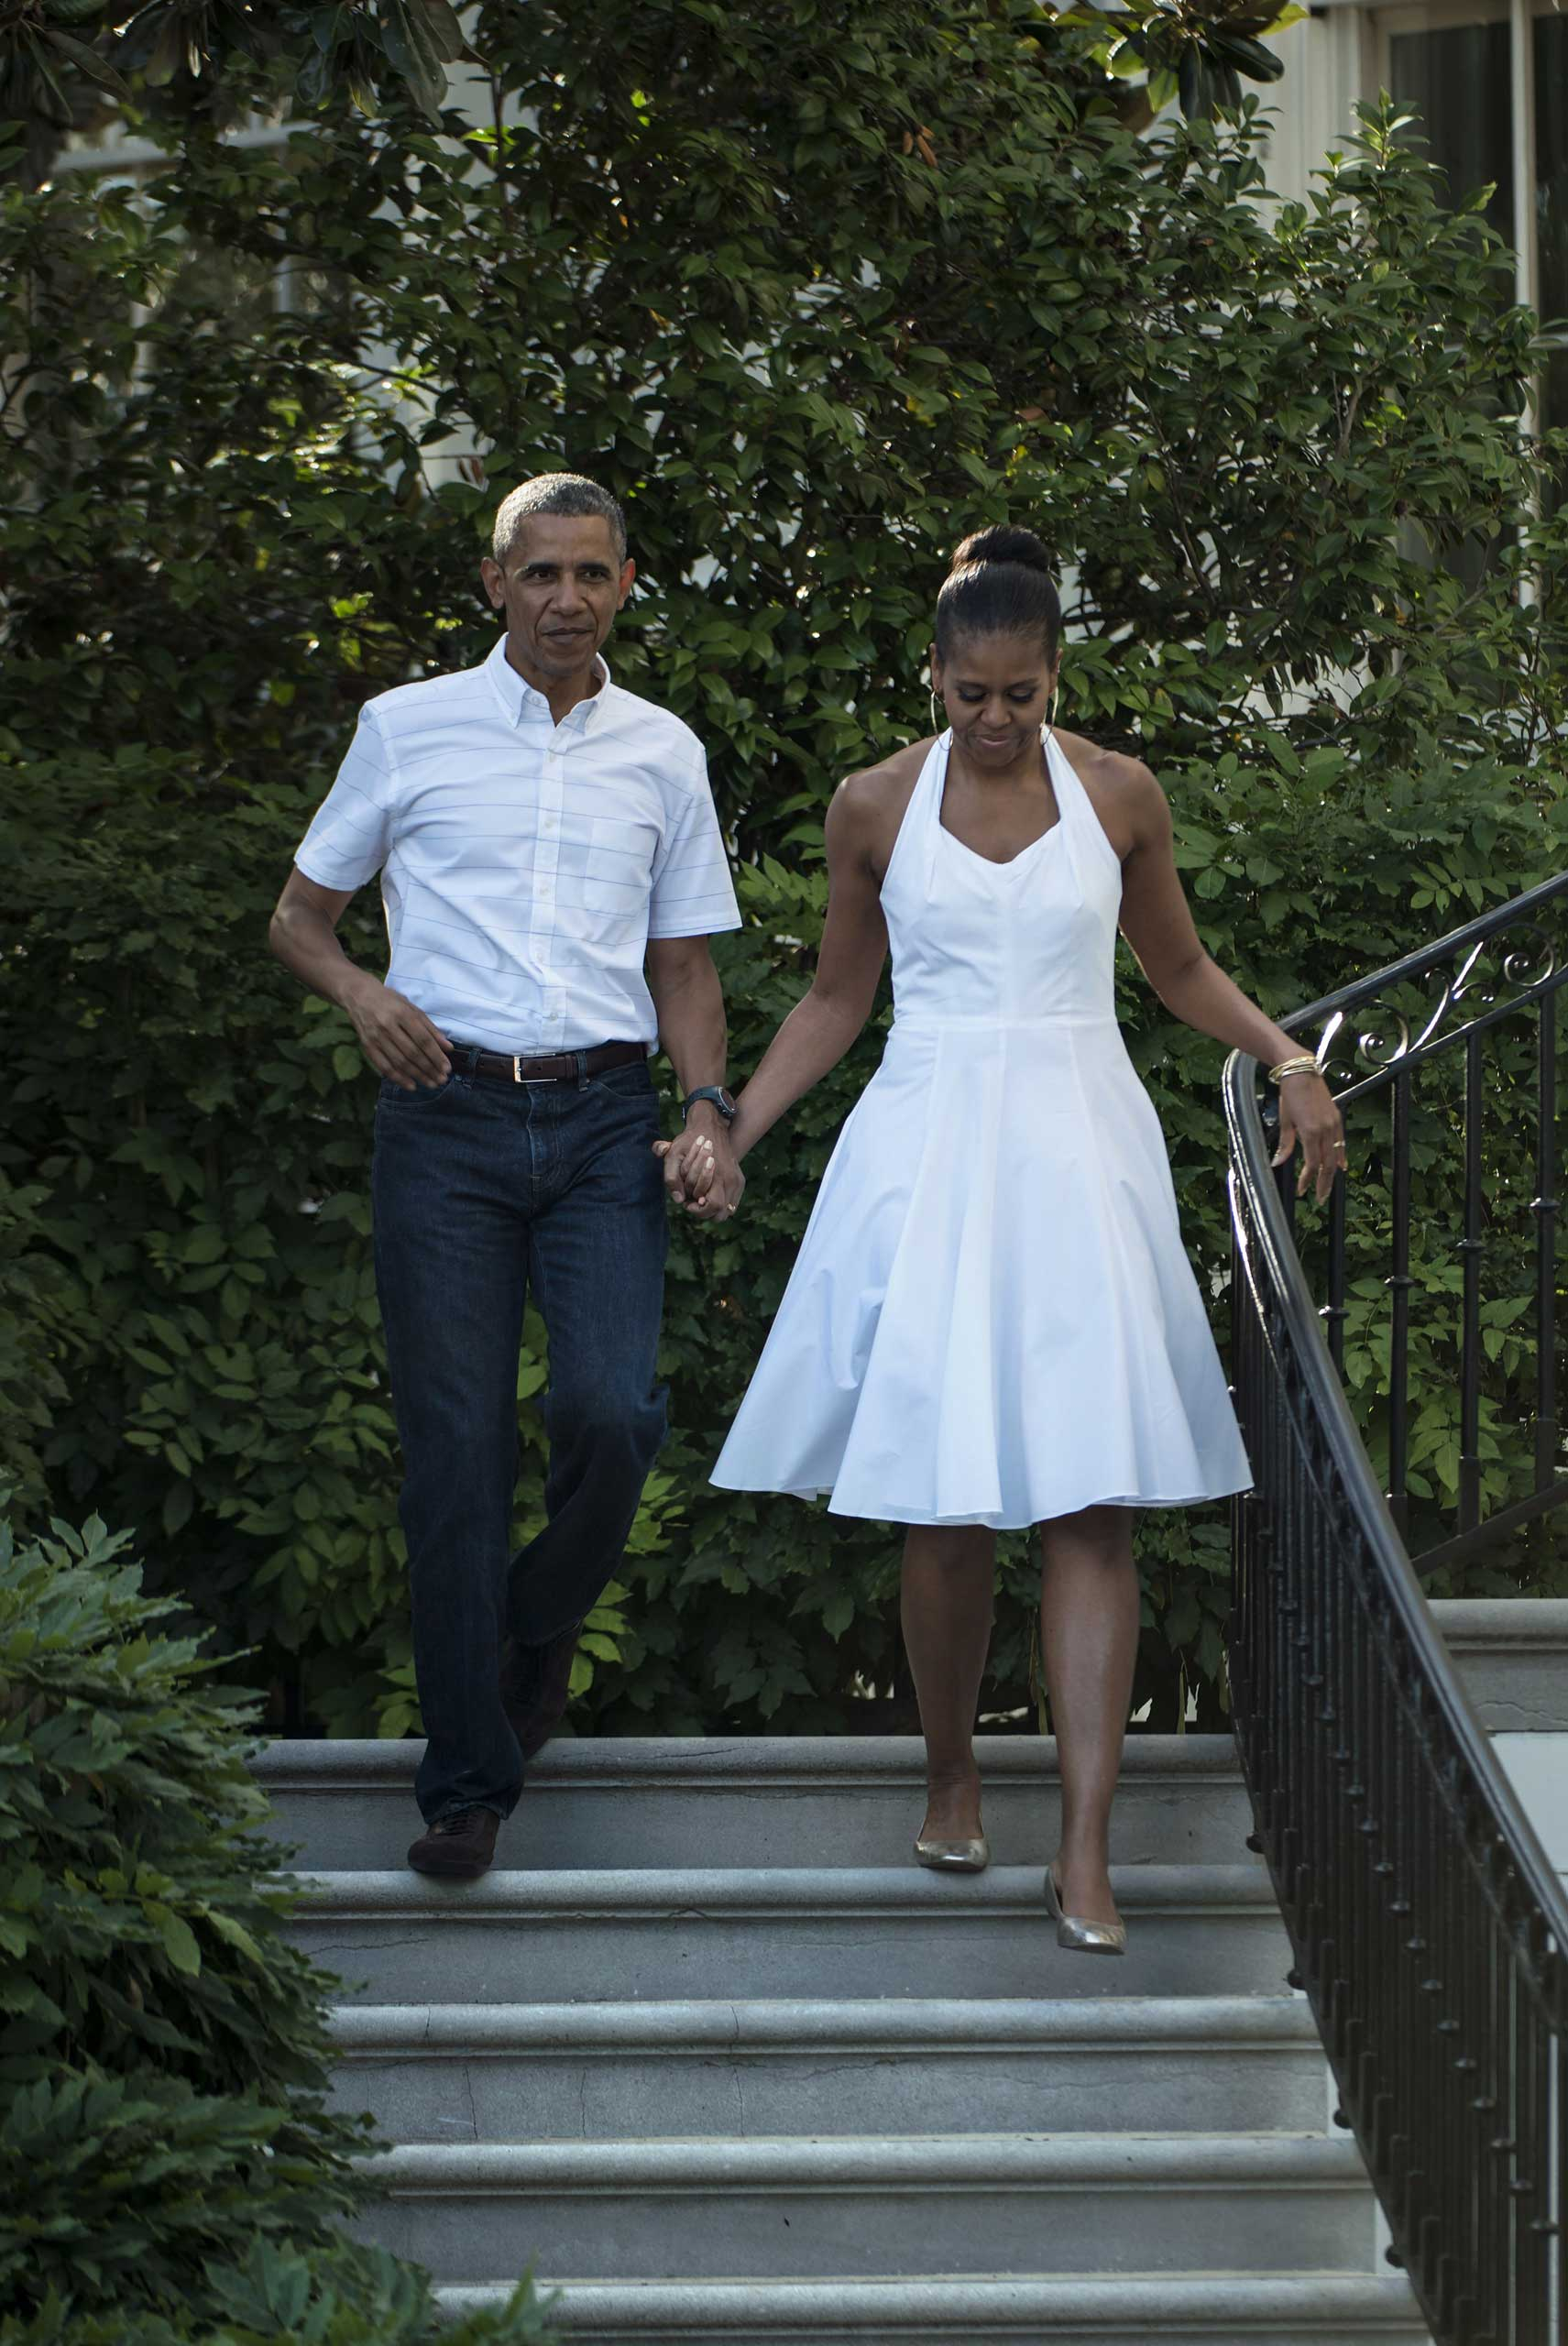 The president may have gone for jeans, but Michelle Obama was ready for summer, wearing a crisp white summer dress to the White House Fourth of July celebration.